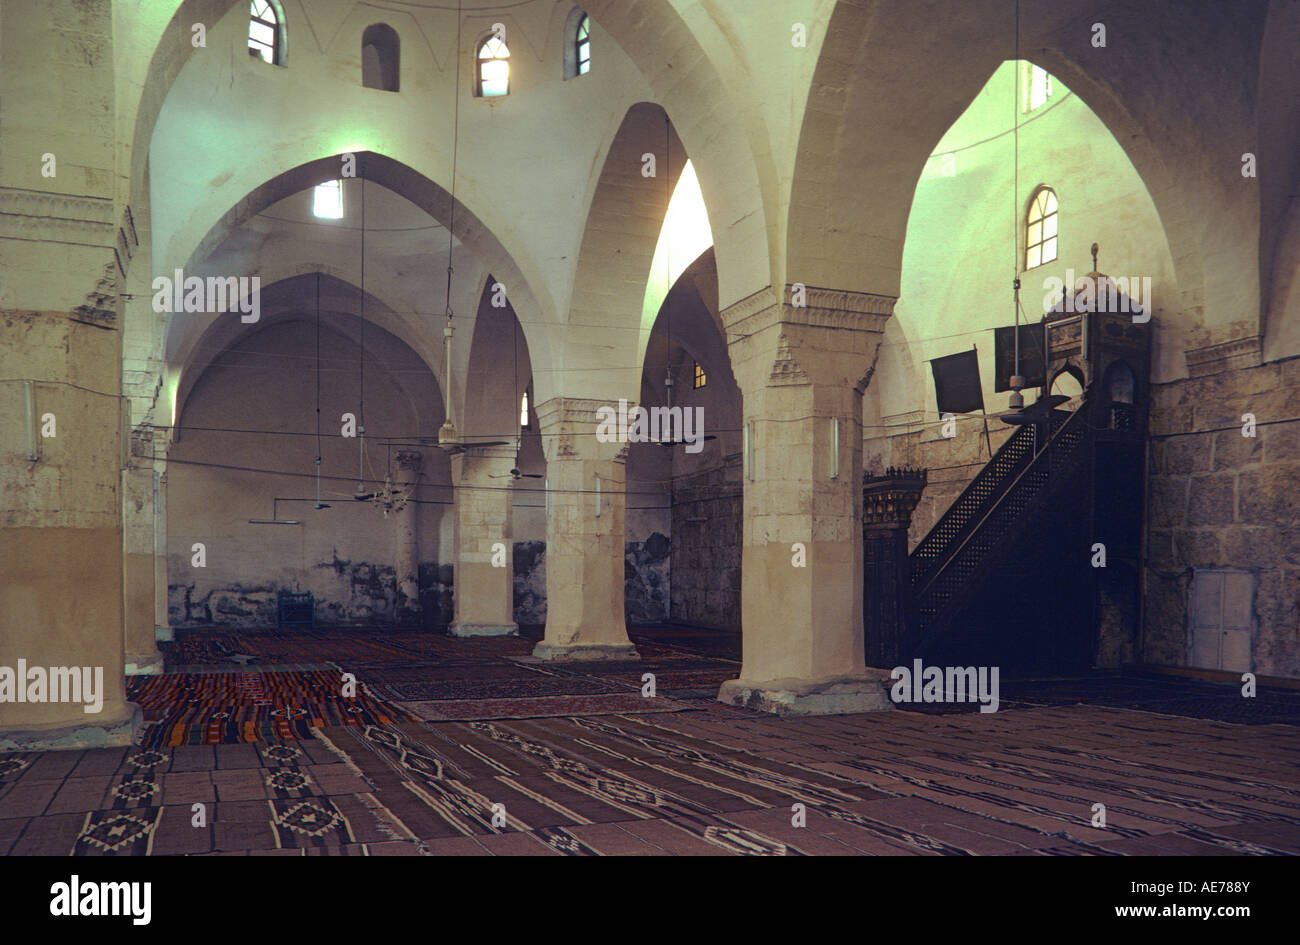 Great Mosque of Hama, Syria, demolished in 1982. - Stock Image